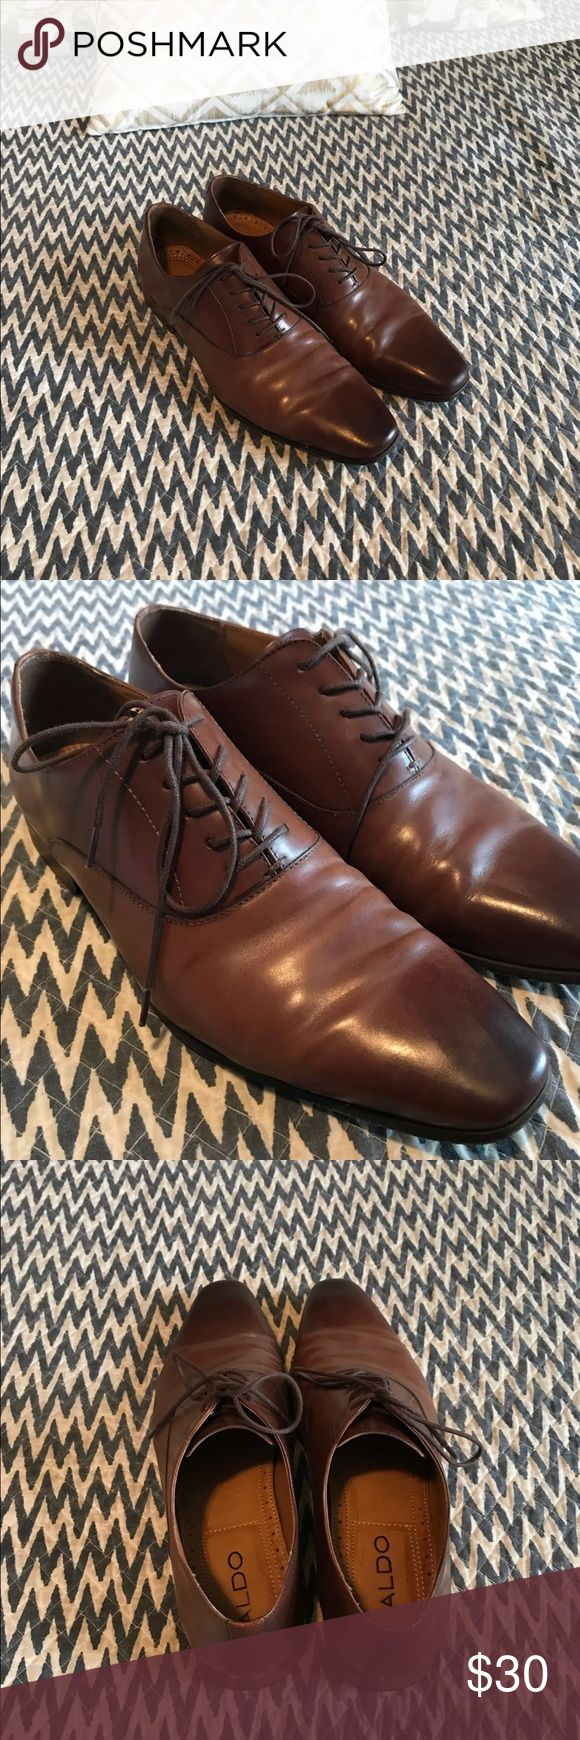 Genuine Leather Men's Aldo shoes - brown Genuine brown Leather shoes from Aldo in good condition. Size 11. Aldo Shoes Oxfords & Derbys